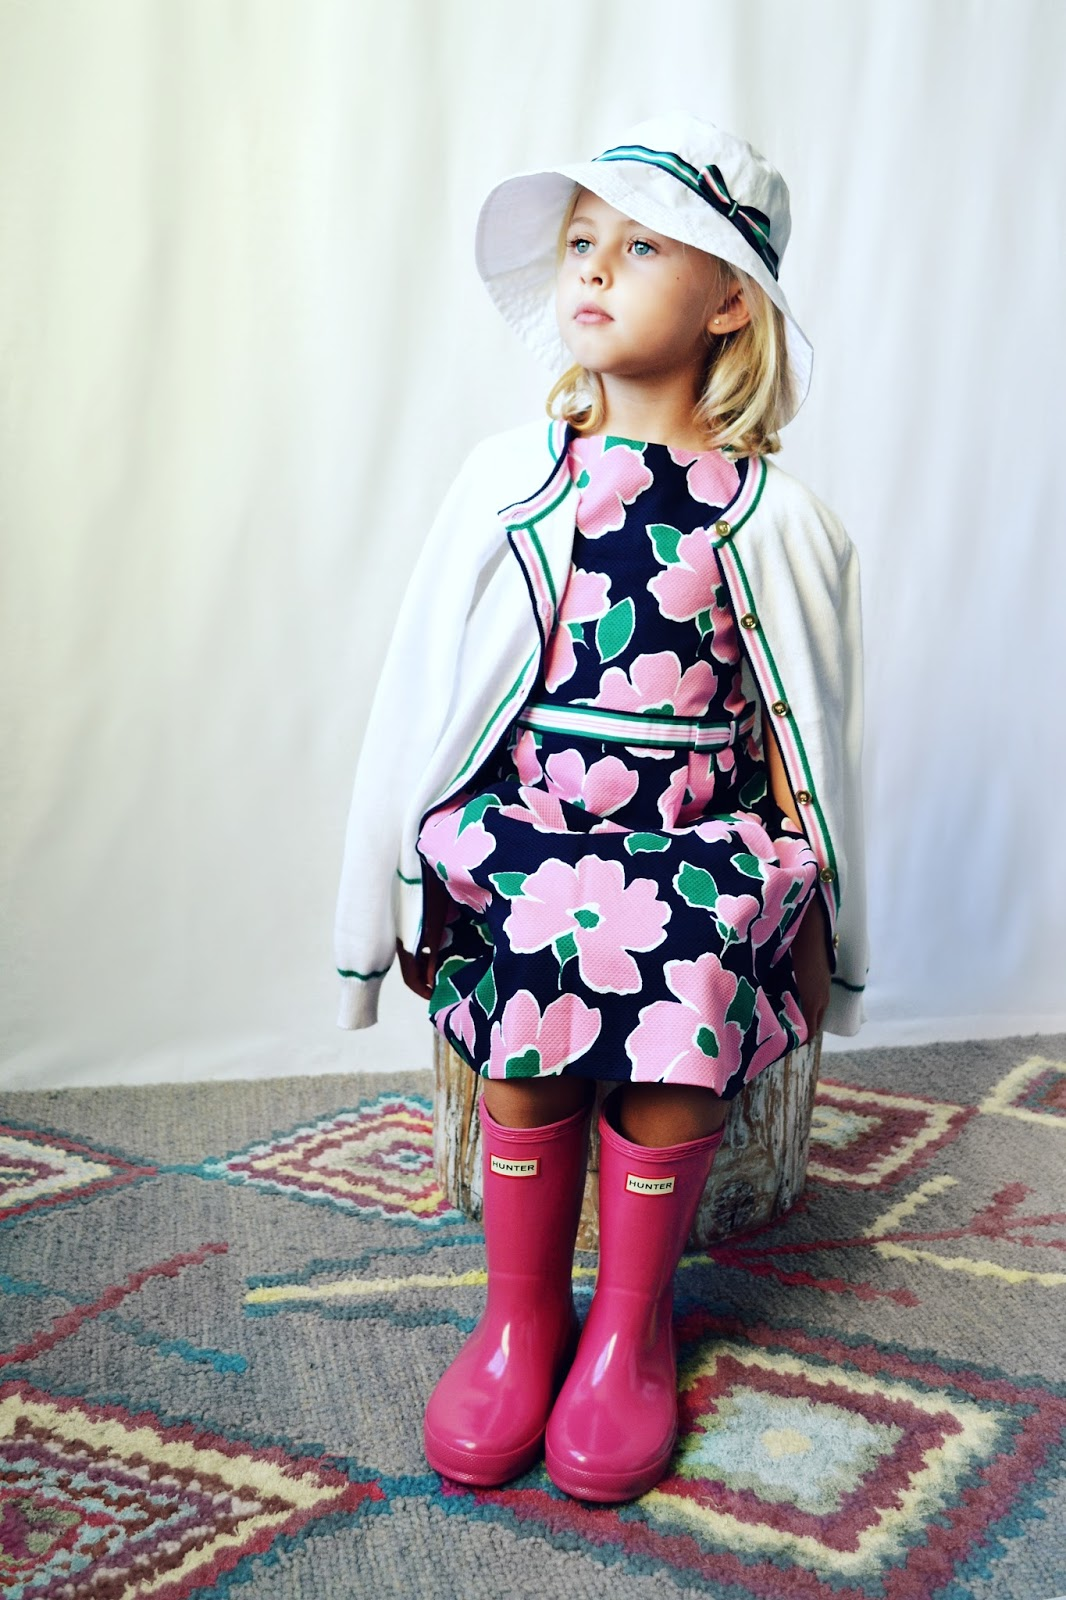 The Penny Parlor Spring Looks With Janie Jack